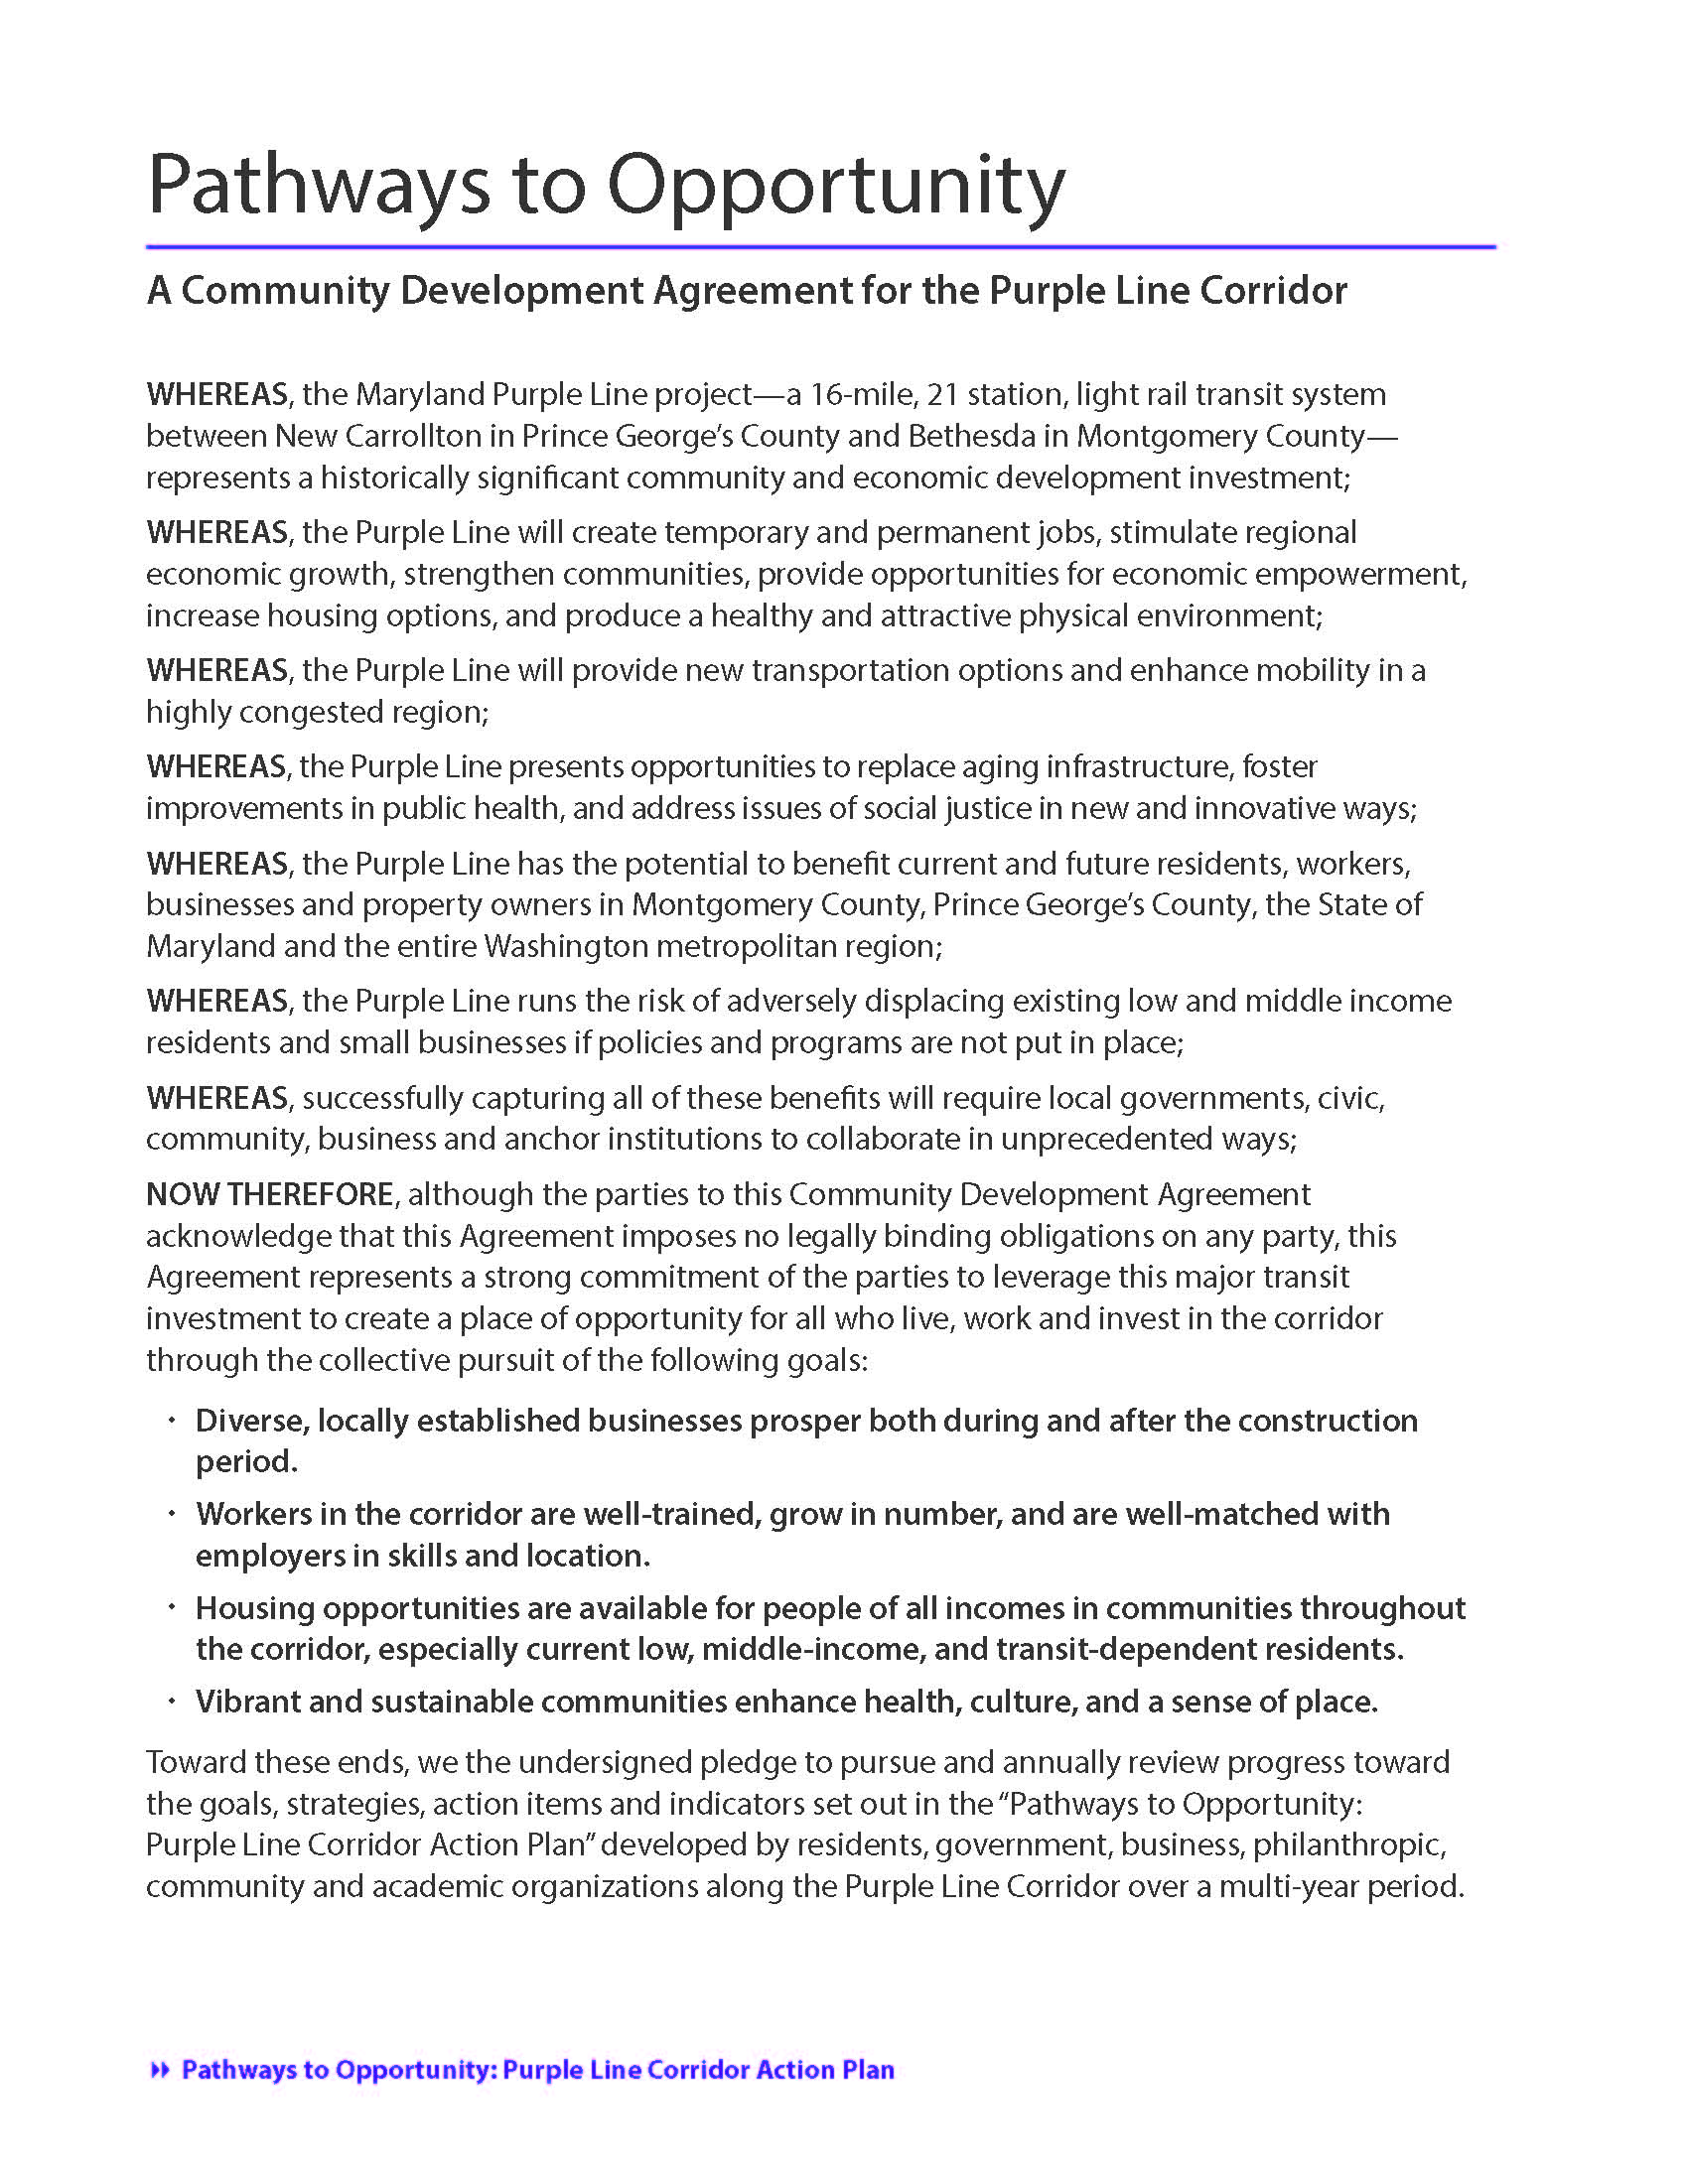 Community Development Agreement Plcc